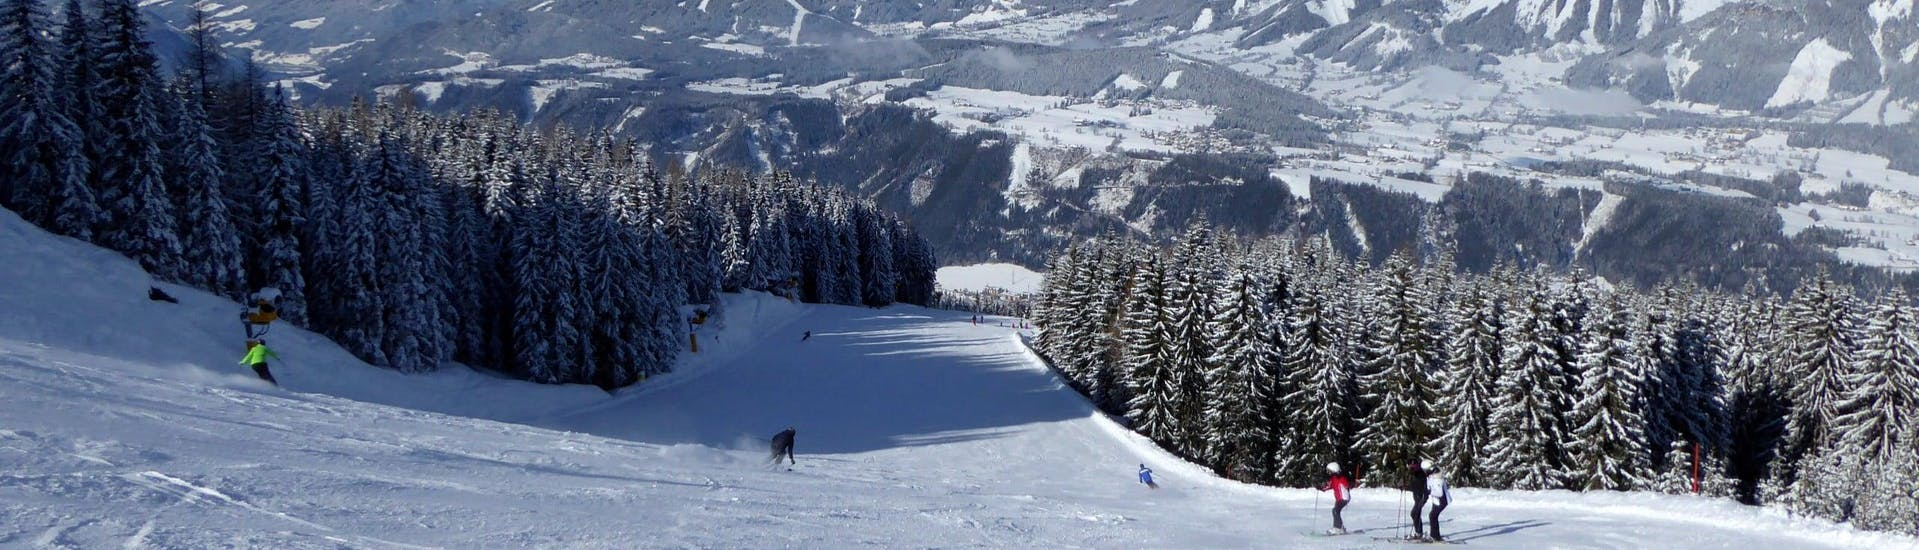 View over the sunny mountain landscape while learning to ski with the ski schools in Schladming-Planai.